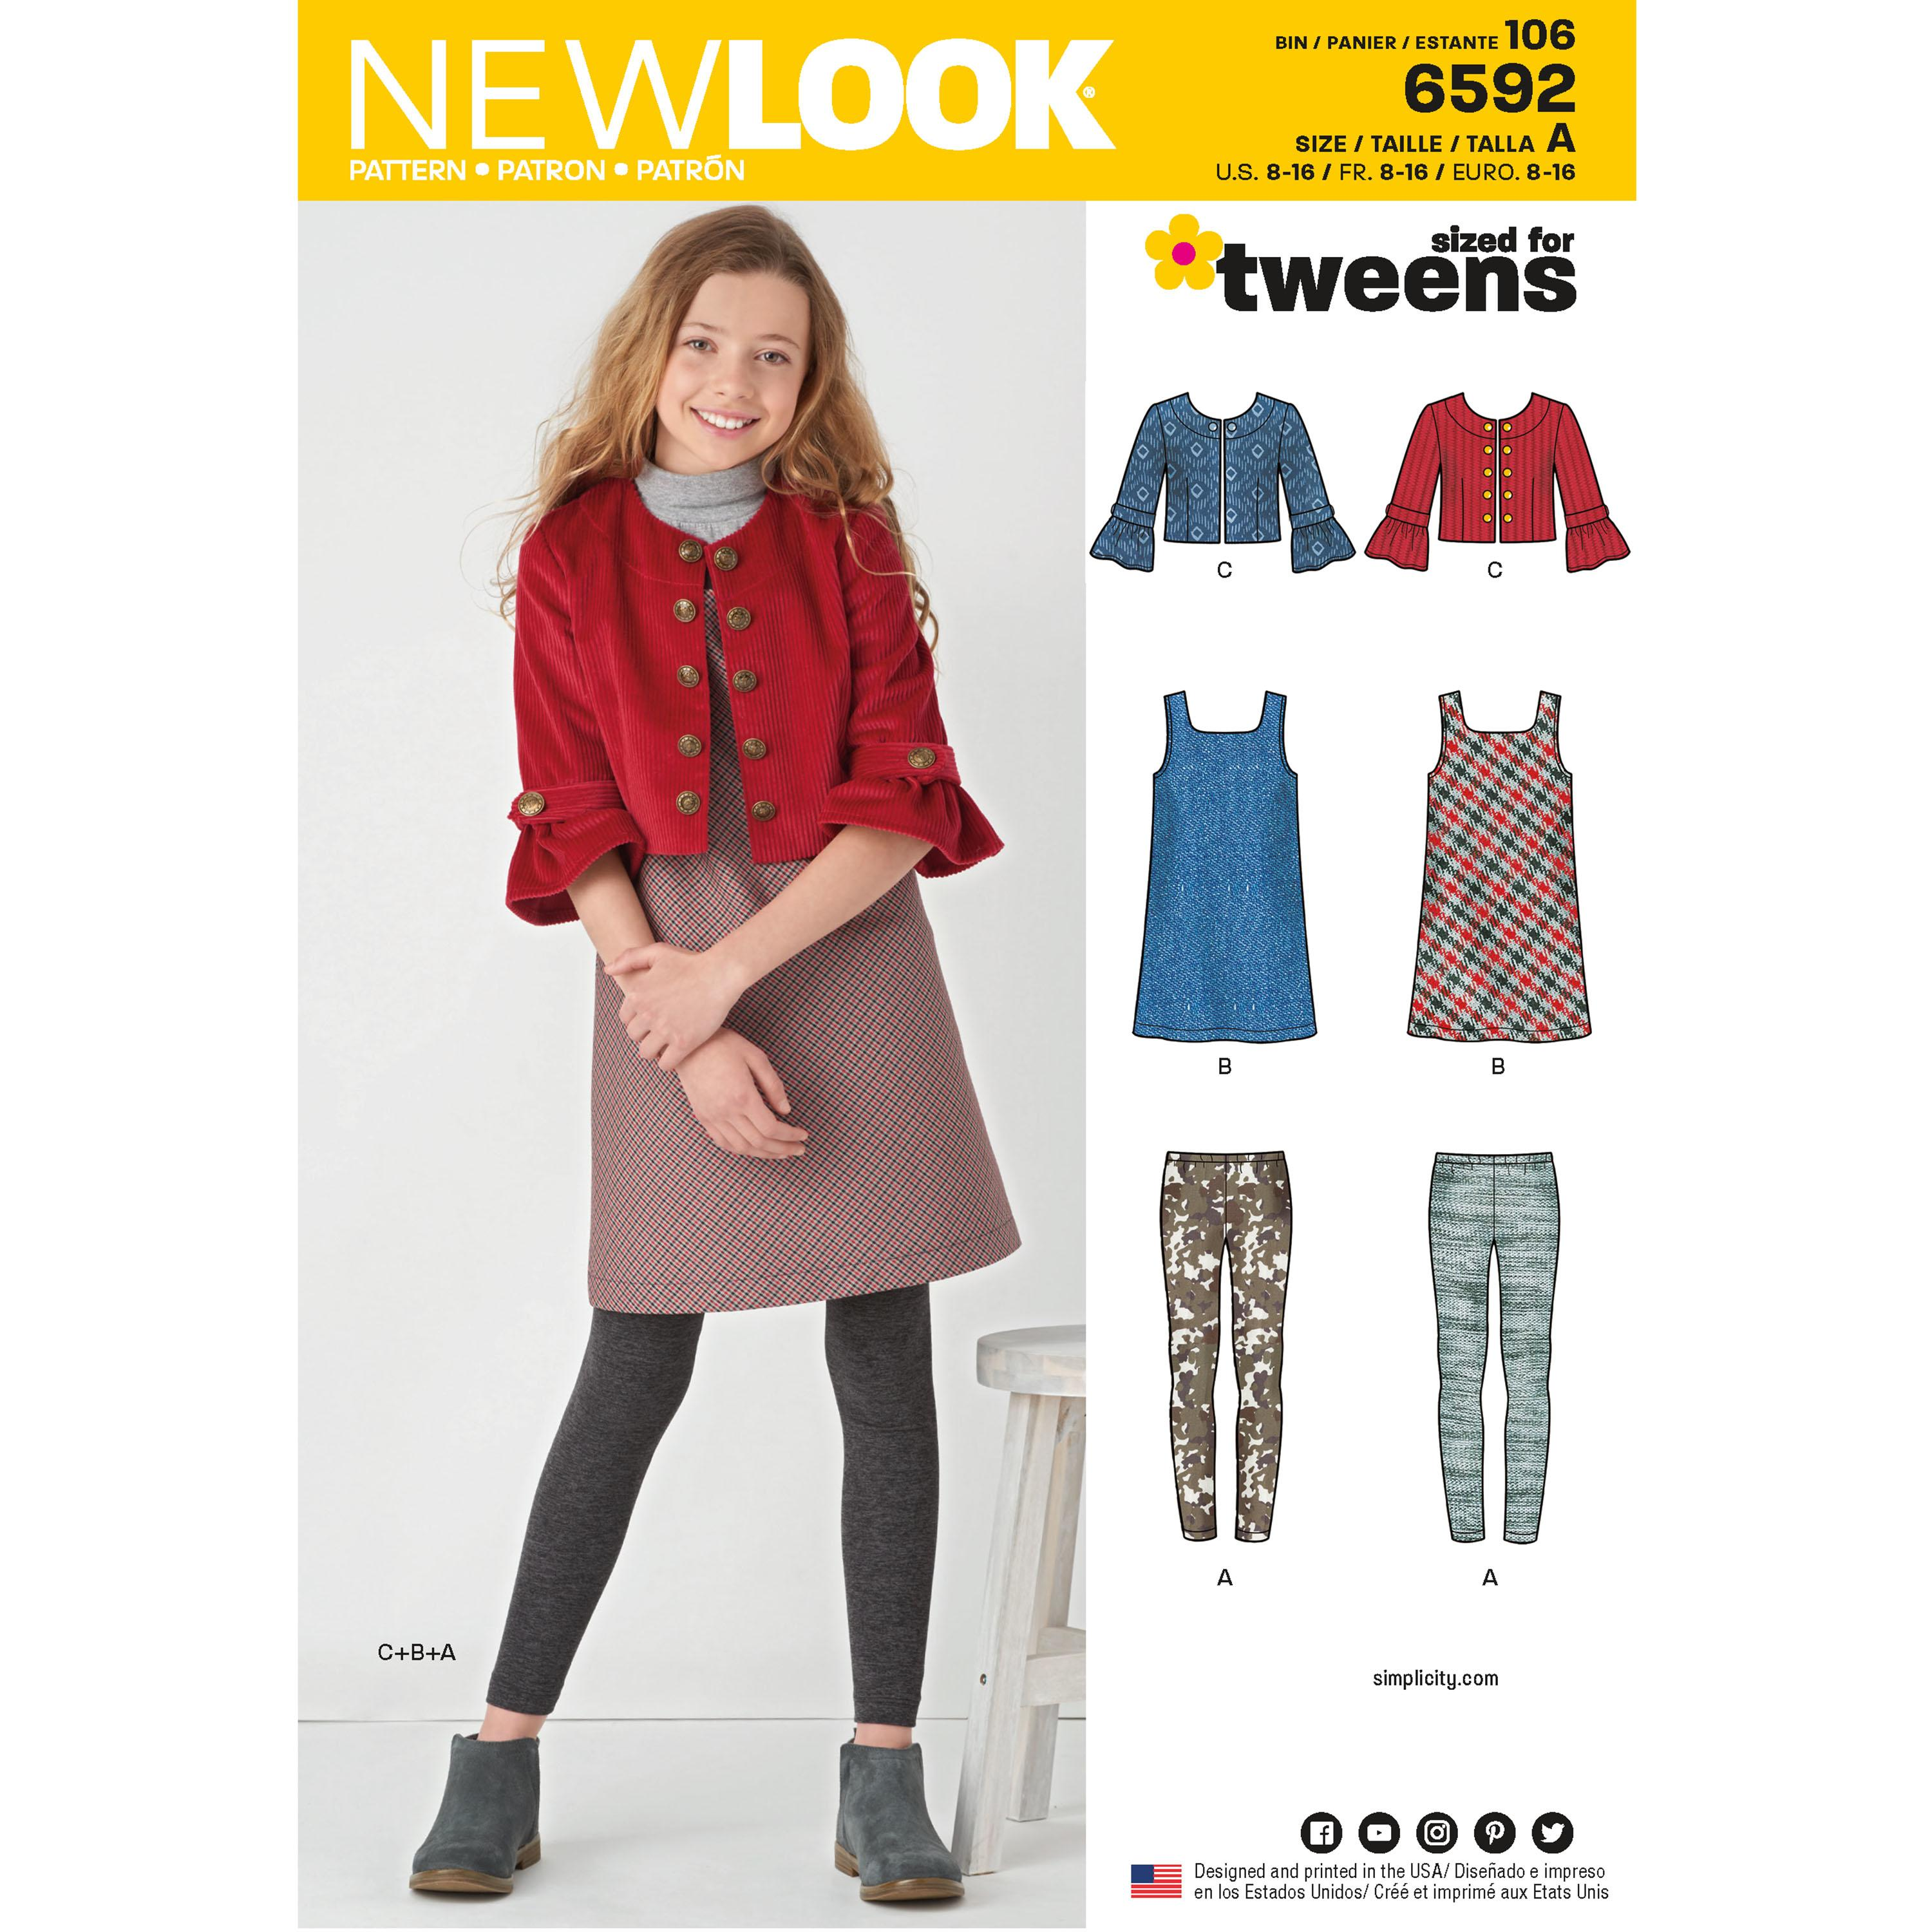 NewLook N6592 Girl's Sportswear